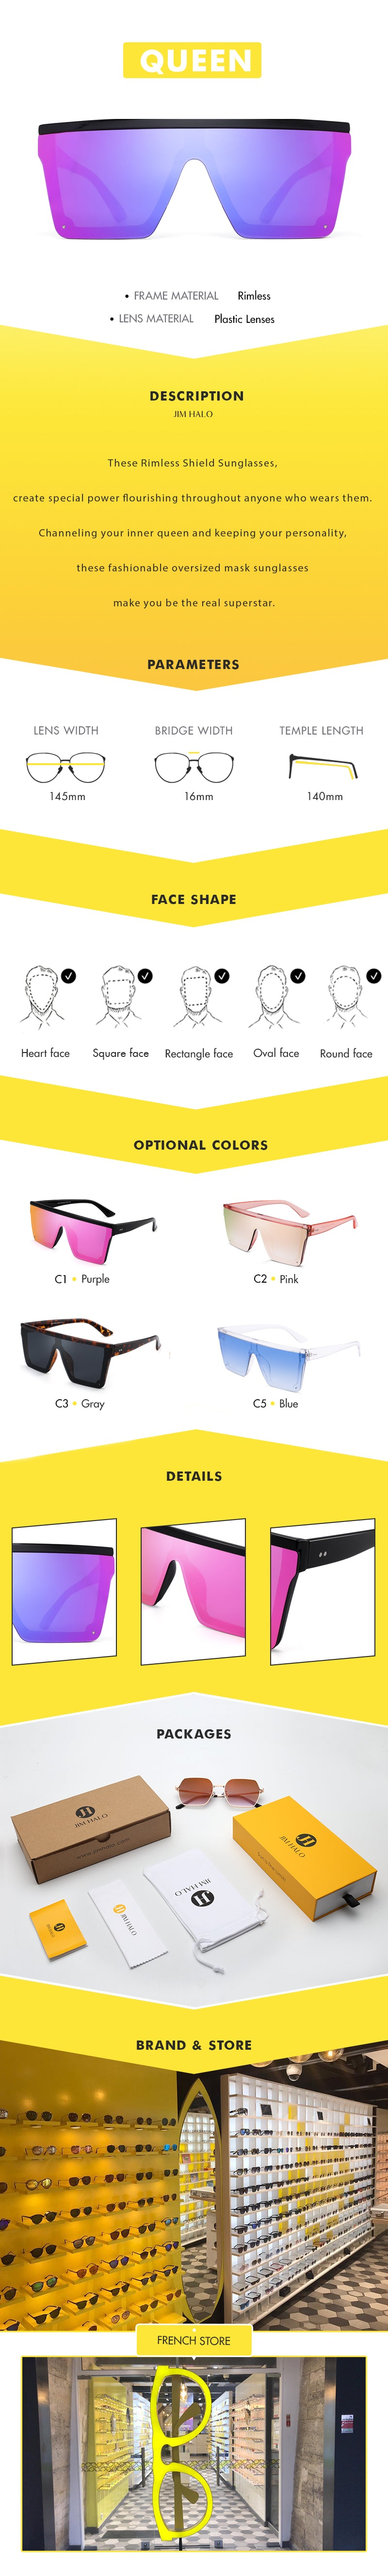 These Rimless Shield Sunglasses, create special power flourishing throughout anyone who wears them. Channeling your inner queen and keeping your personality, these fashionable oversized mask sunglasses make you be the real superstar.